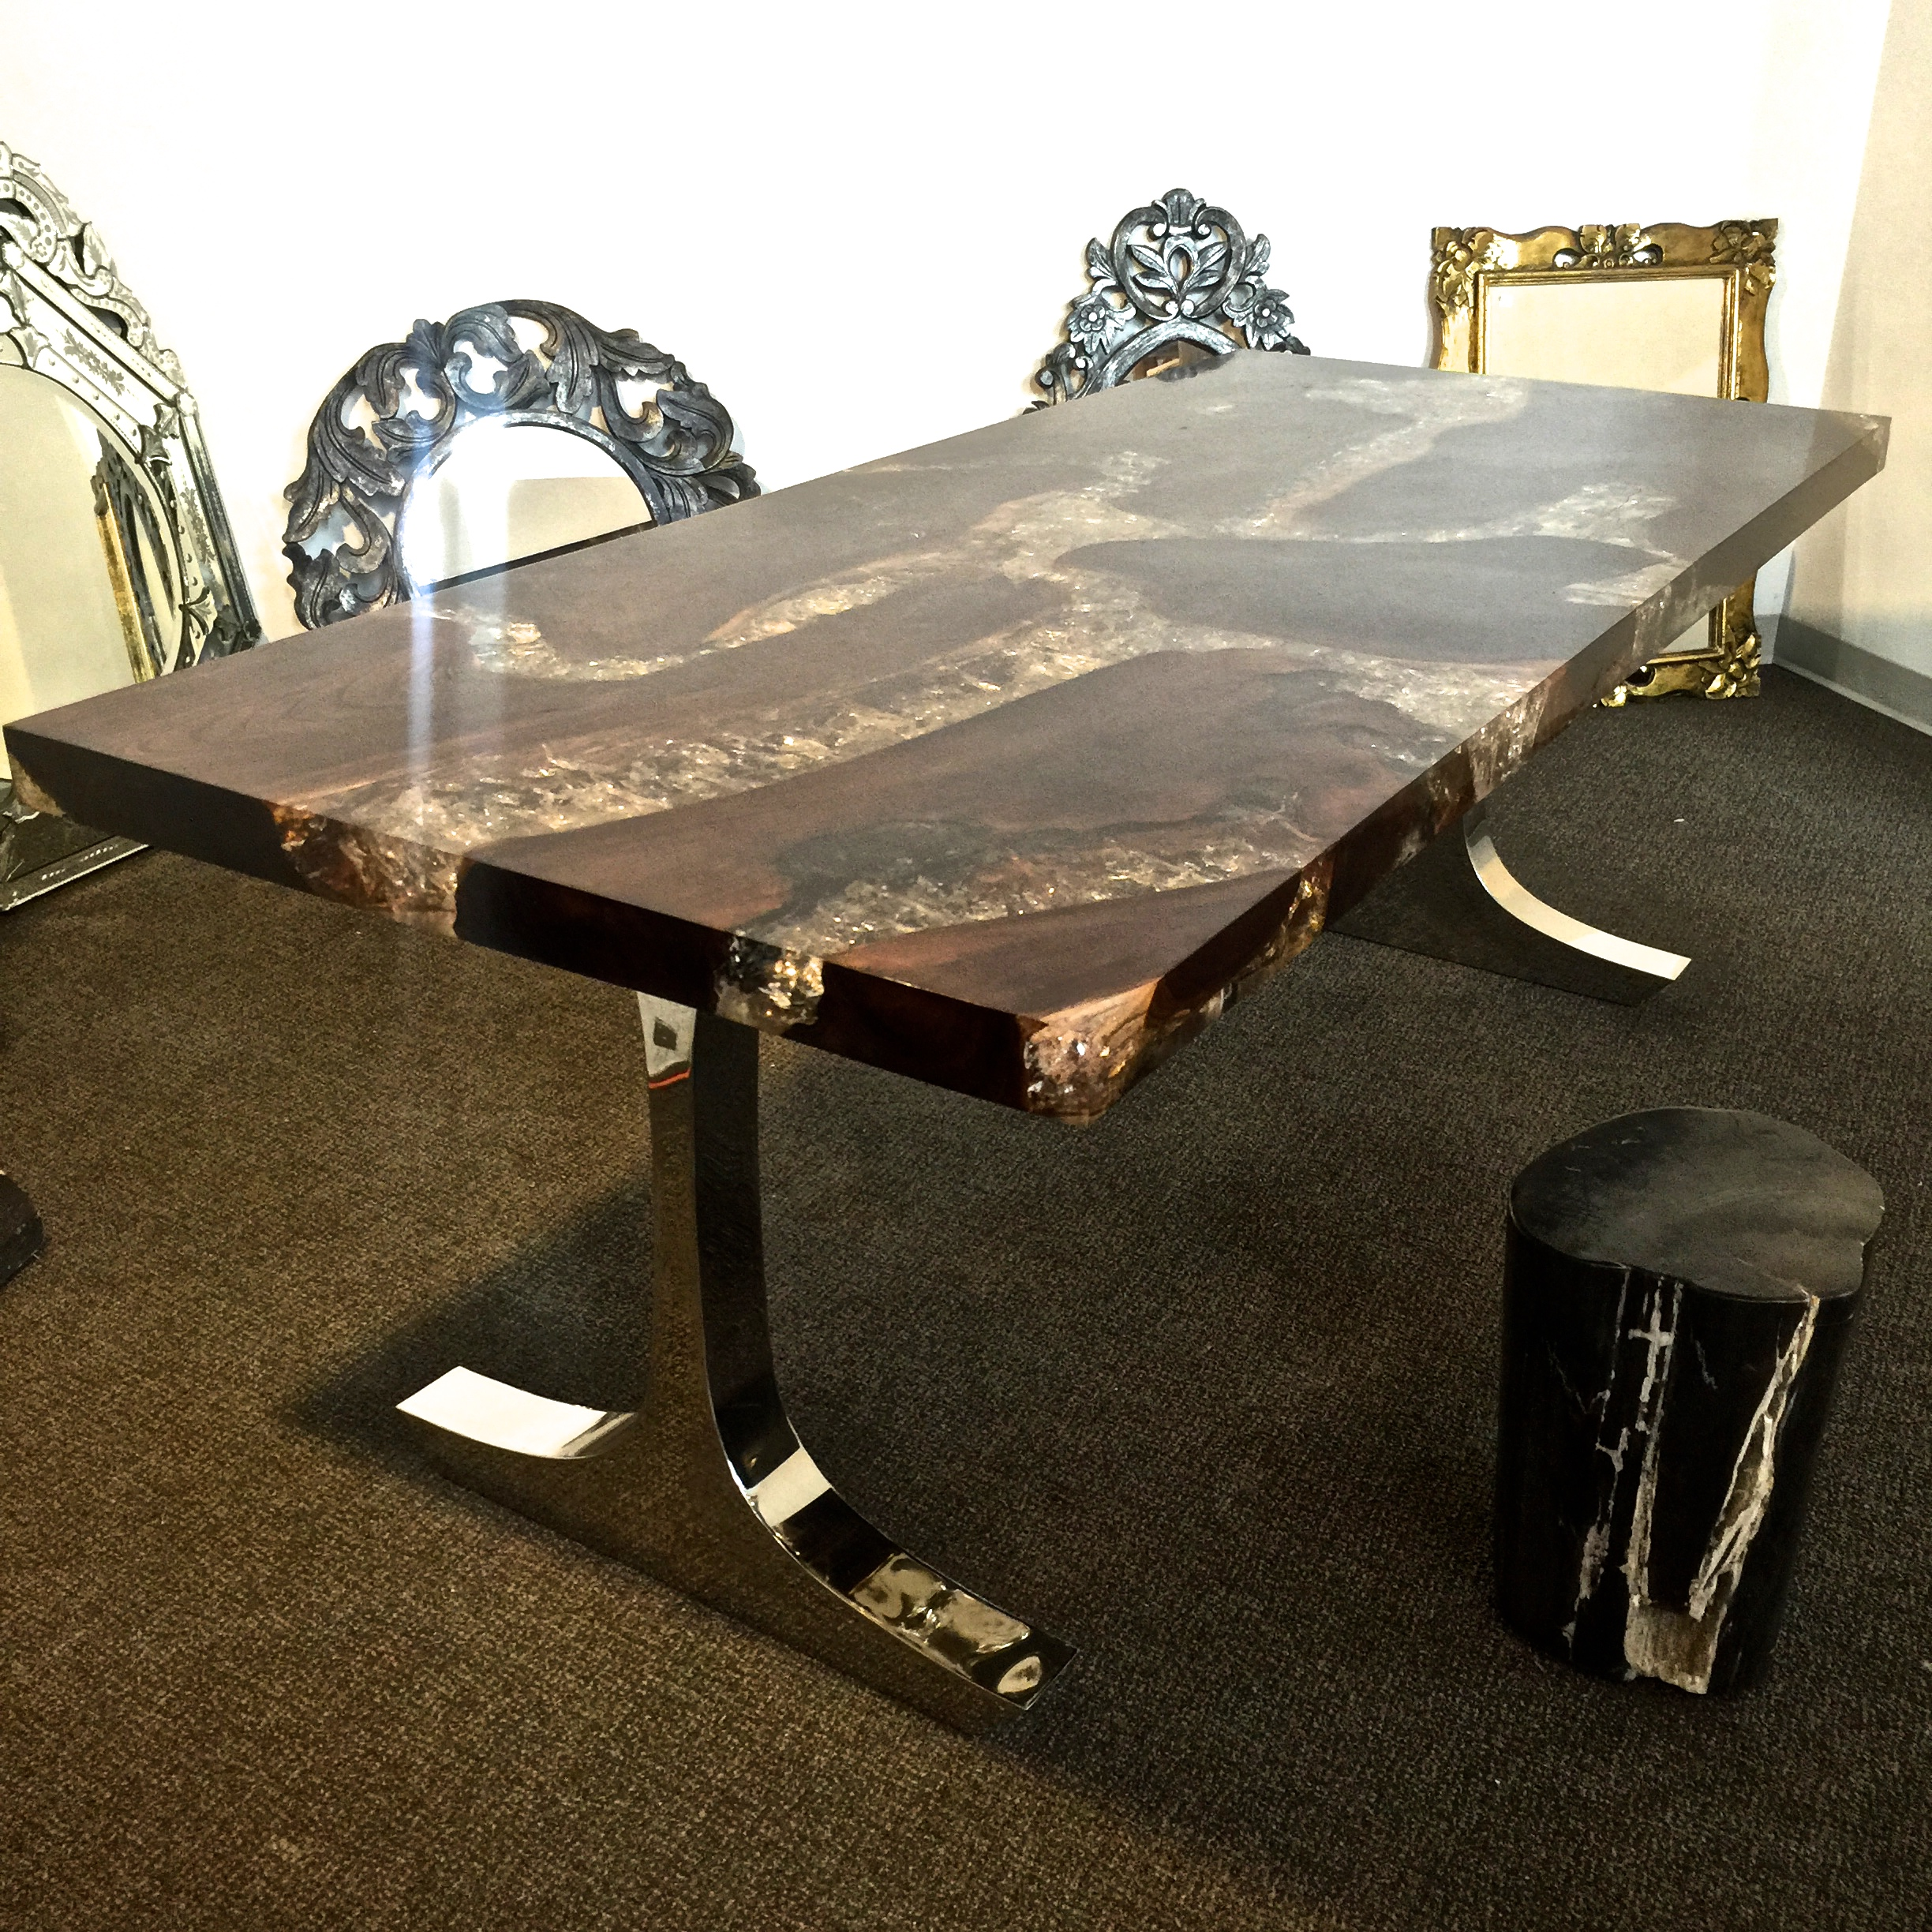 Copy of Teak Root and Resin Table with Stainless Steel Base